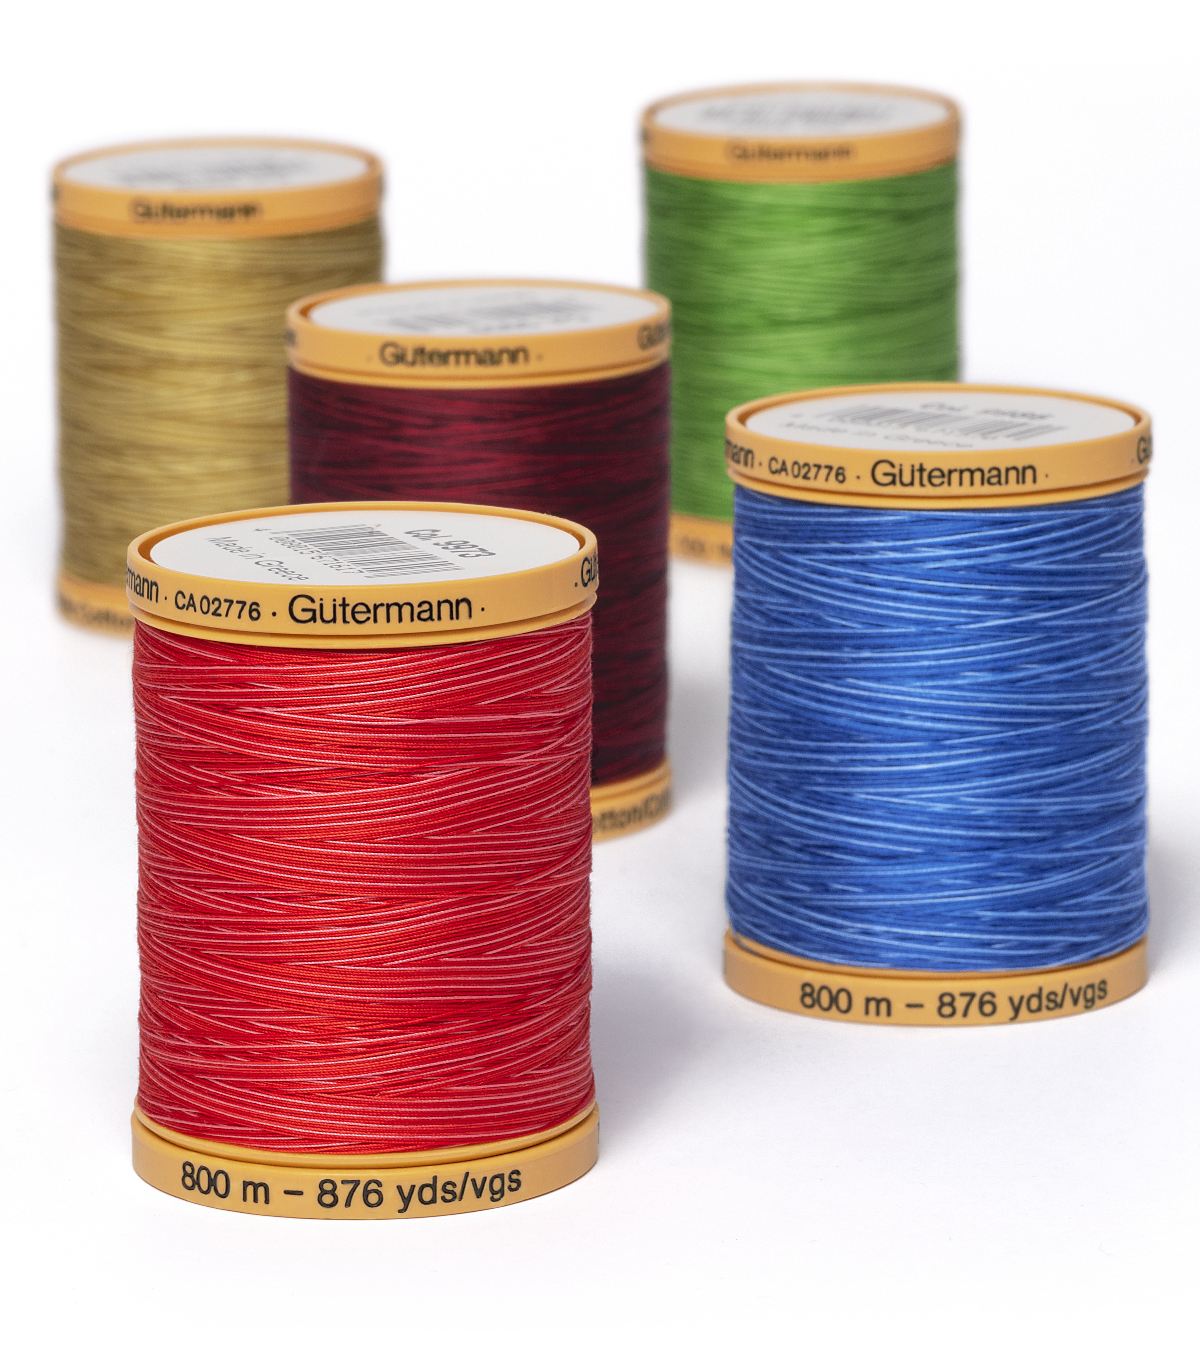 Gutermann Natural Cotton Thread 800m 876 Yards Variegated Colors